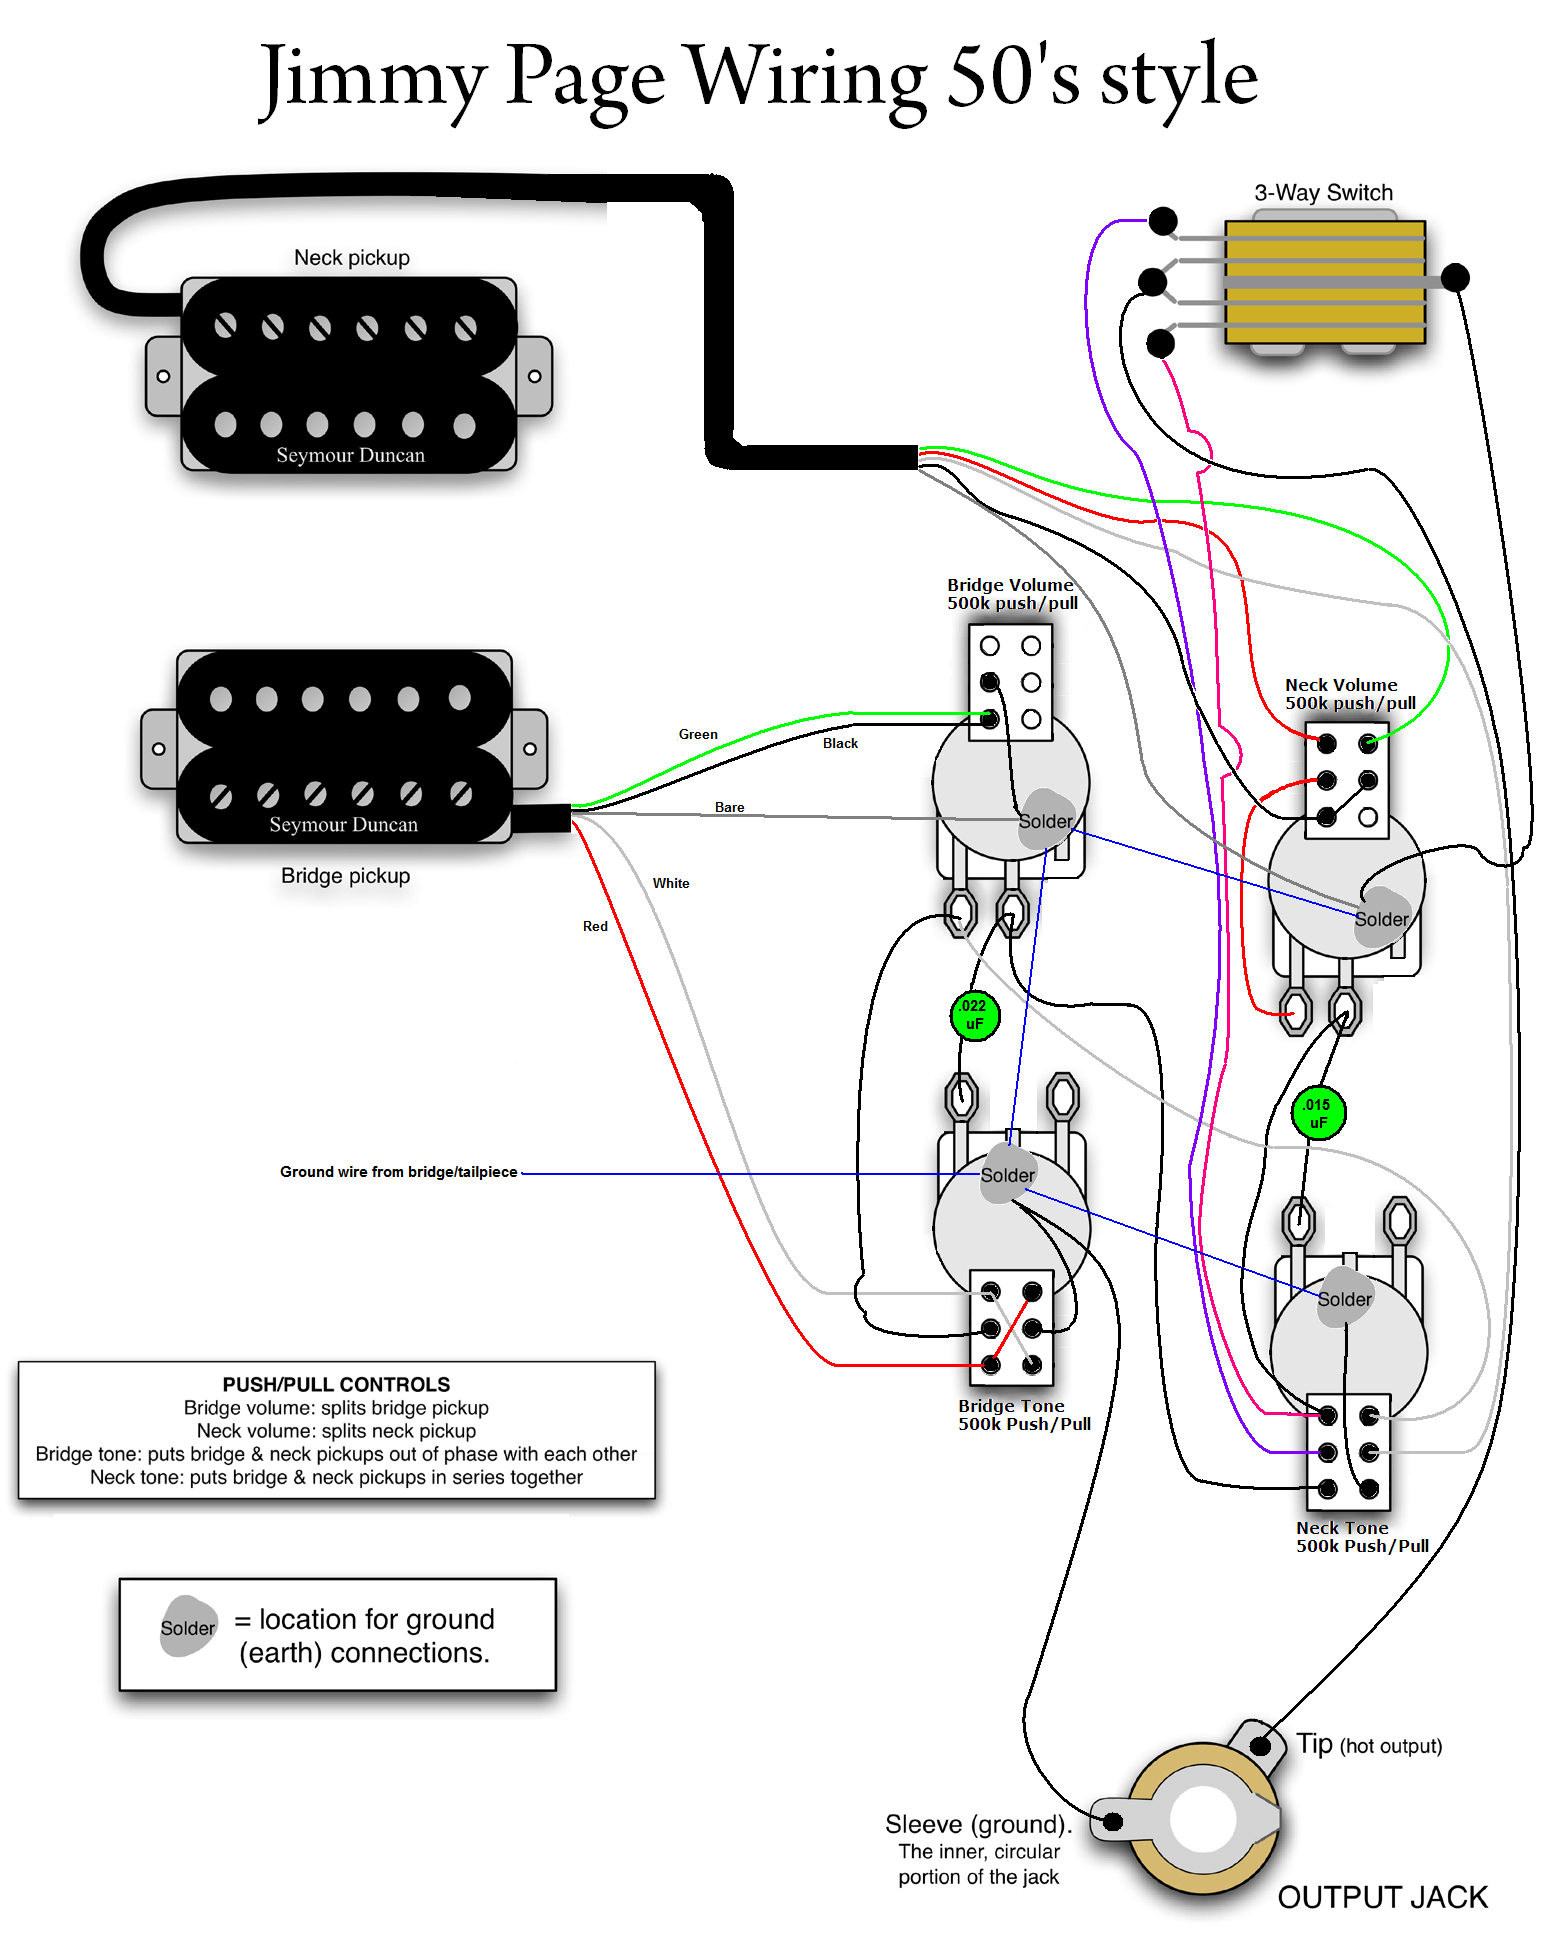 guitar wiring diagrams p90 loncin 110 diagram jimmy page 50s mylespaul instruments